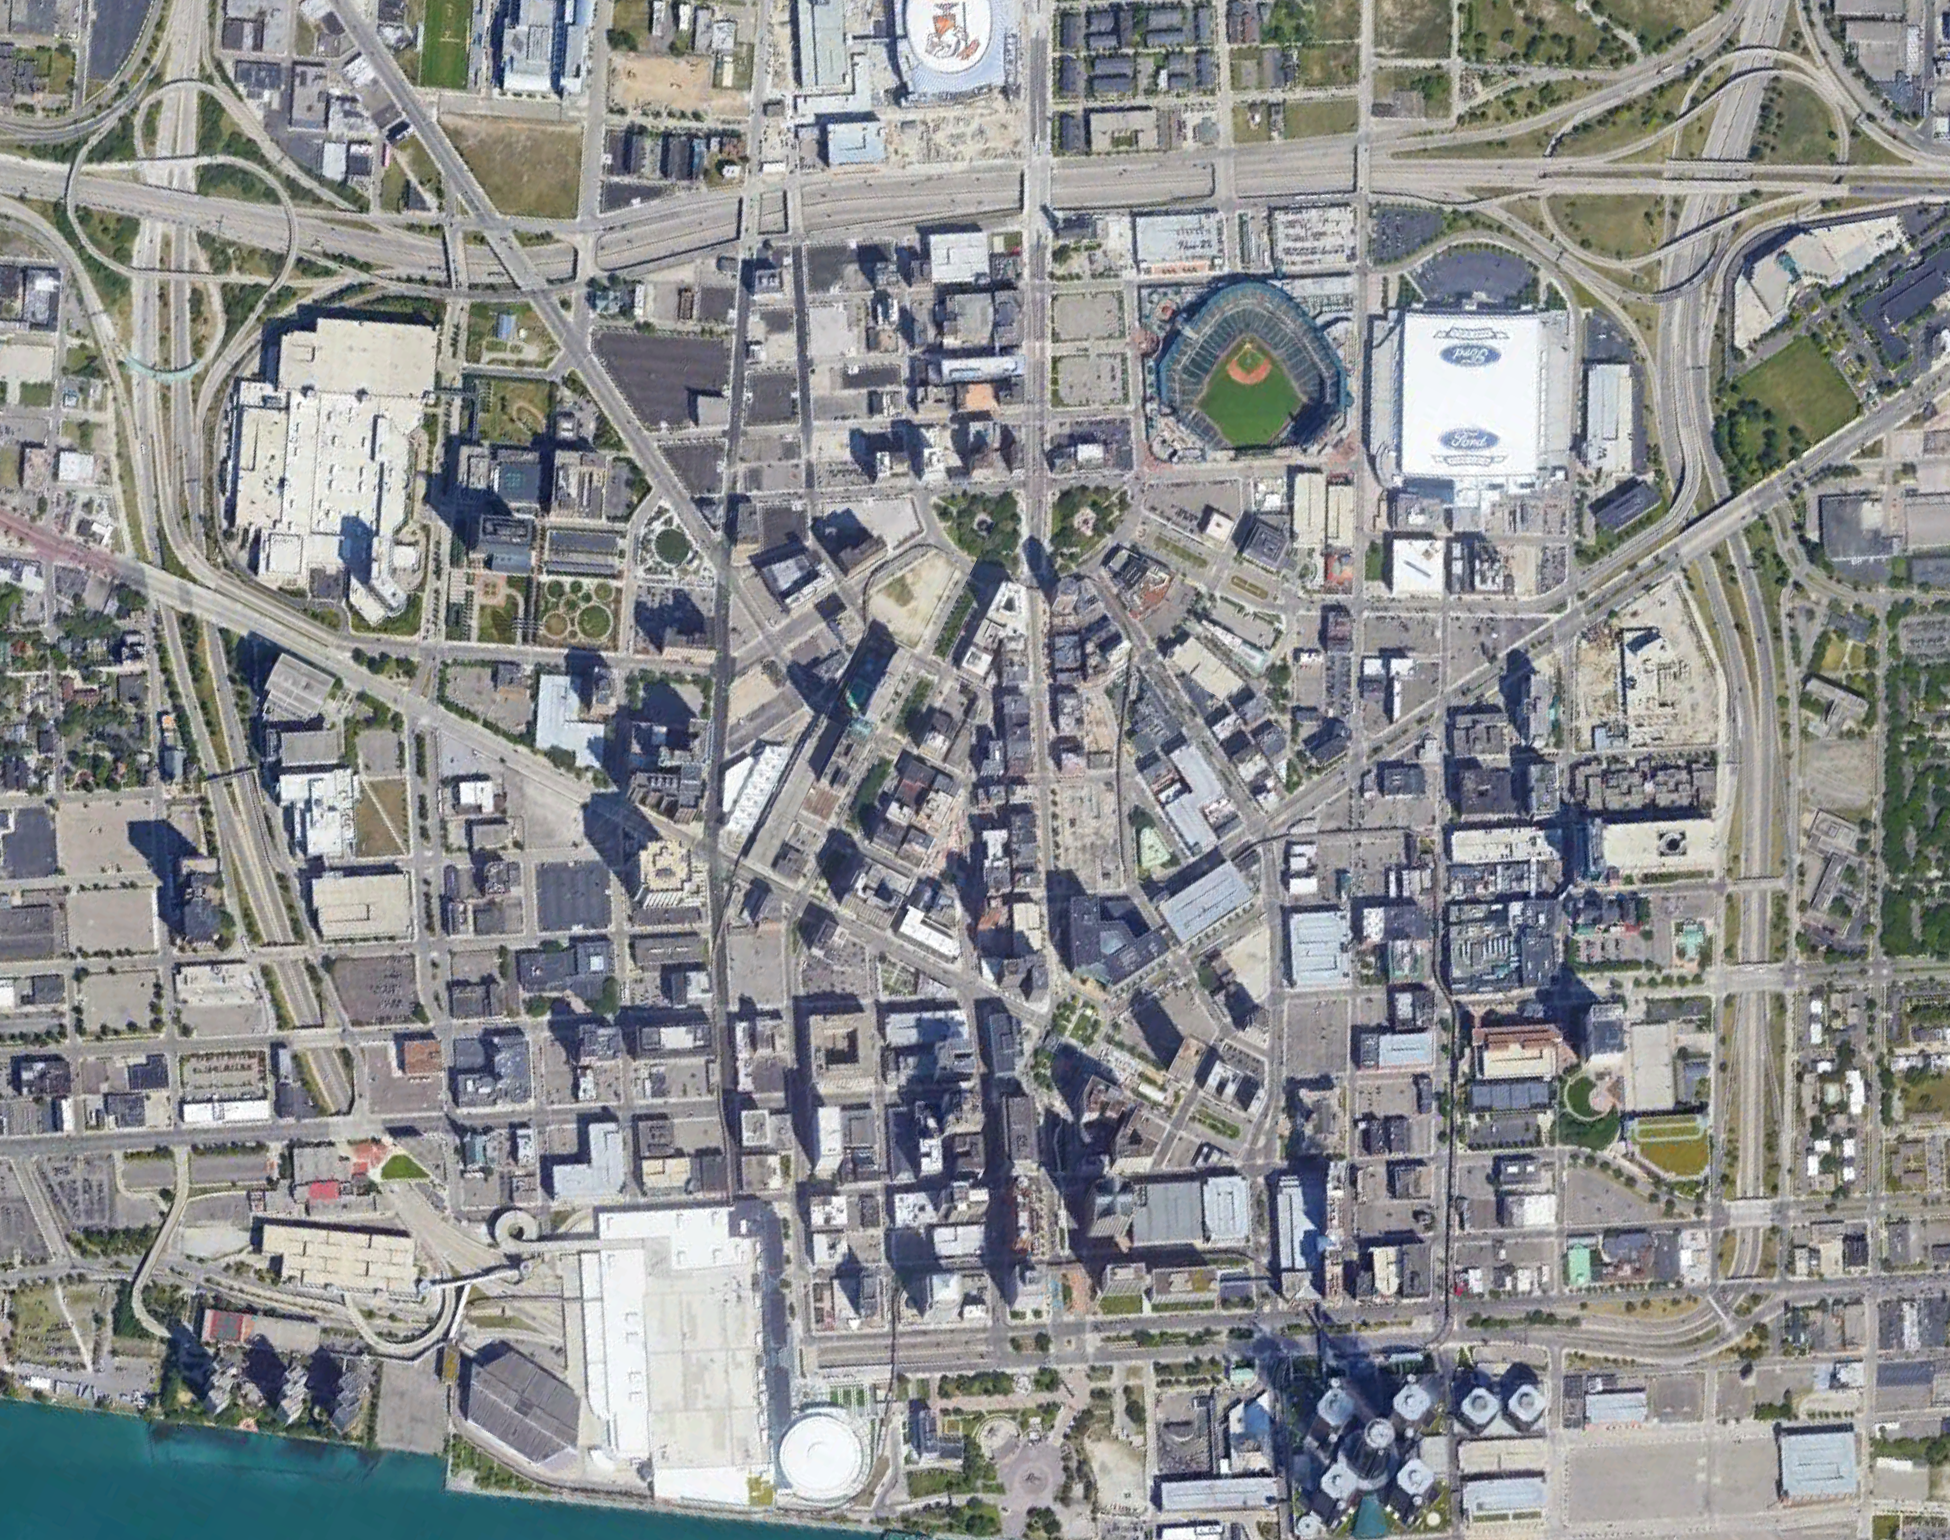 Detroit: Grand Planning for a Territorial Capital